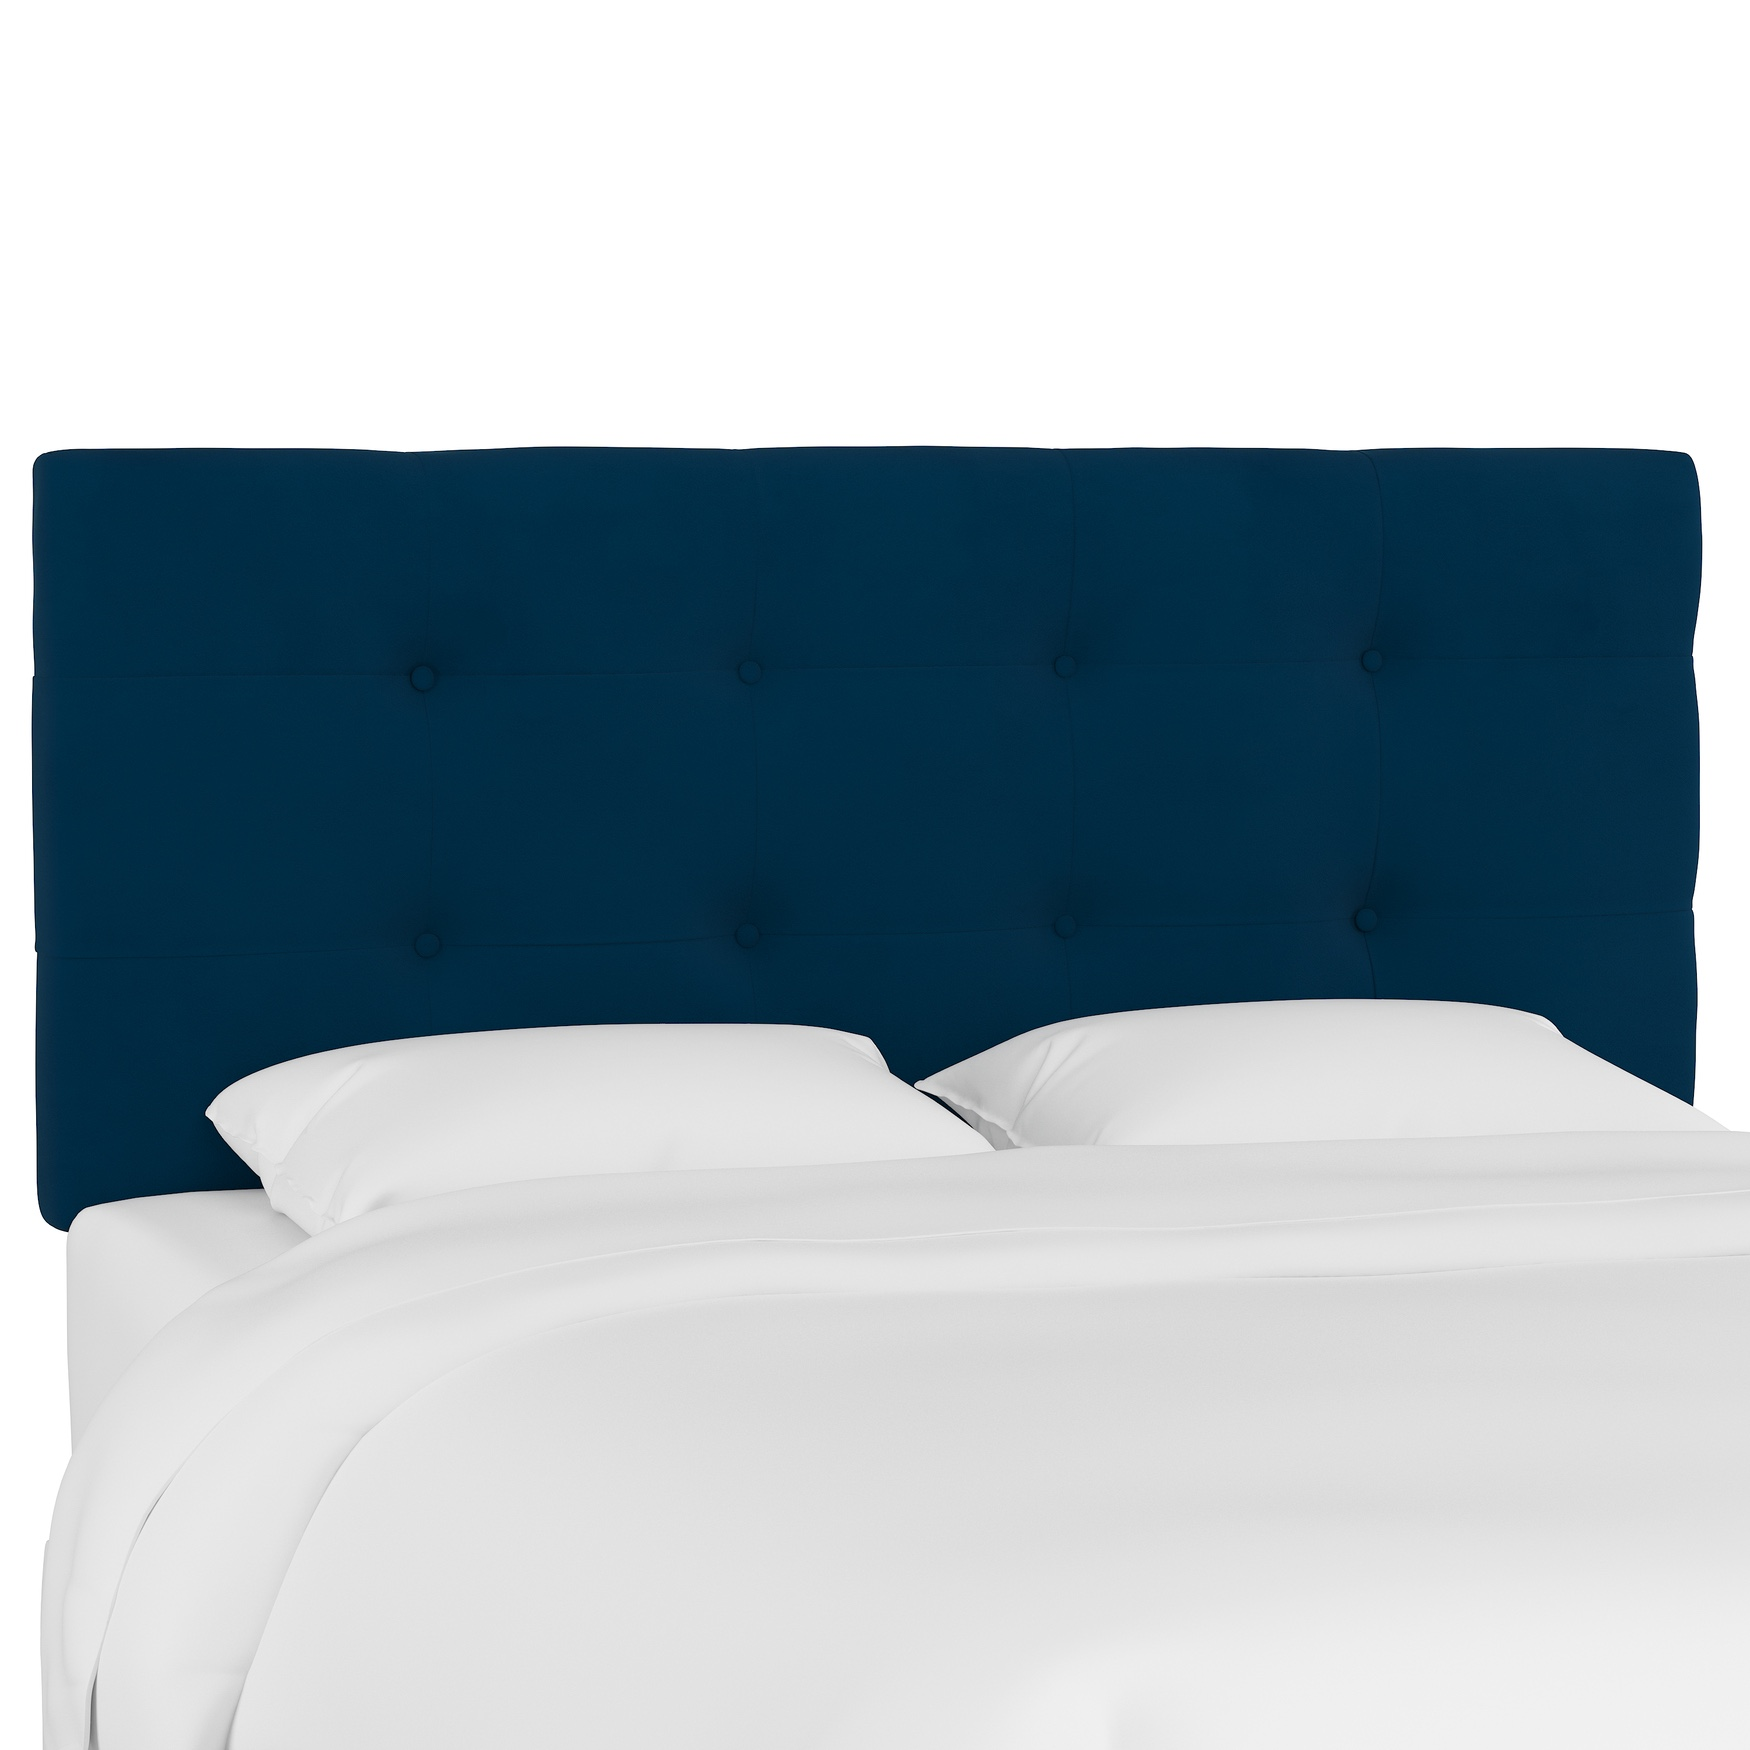 Microsuede Tufted Headboard,